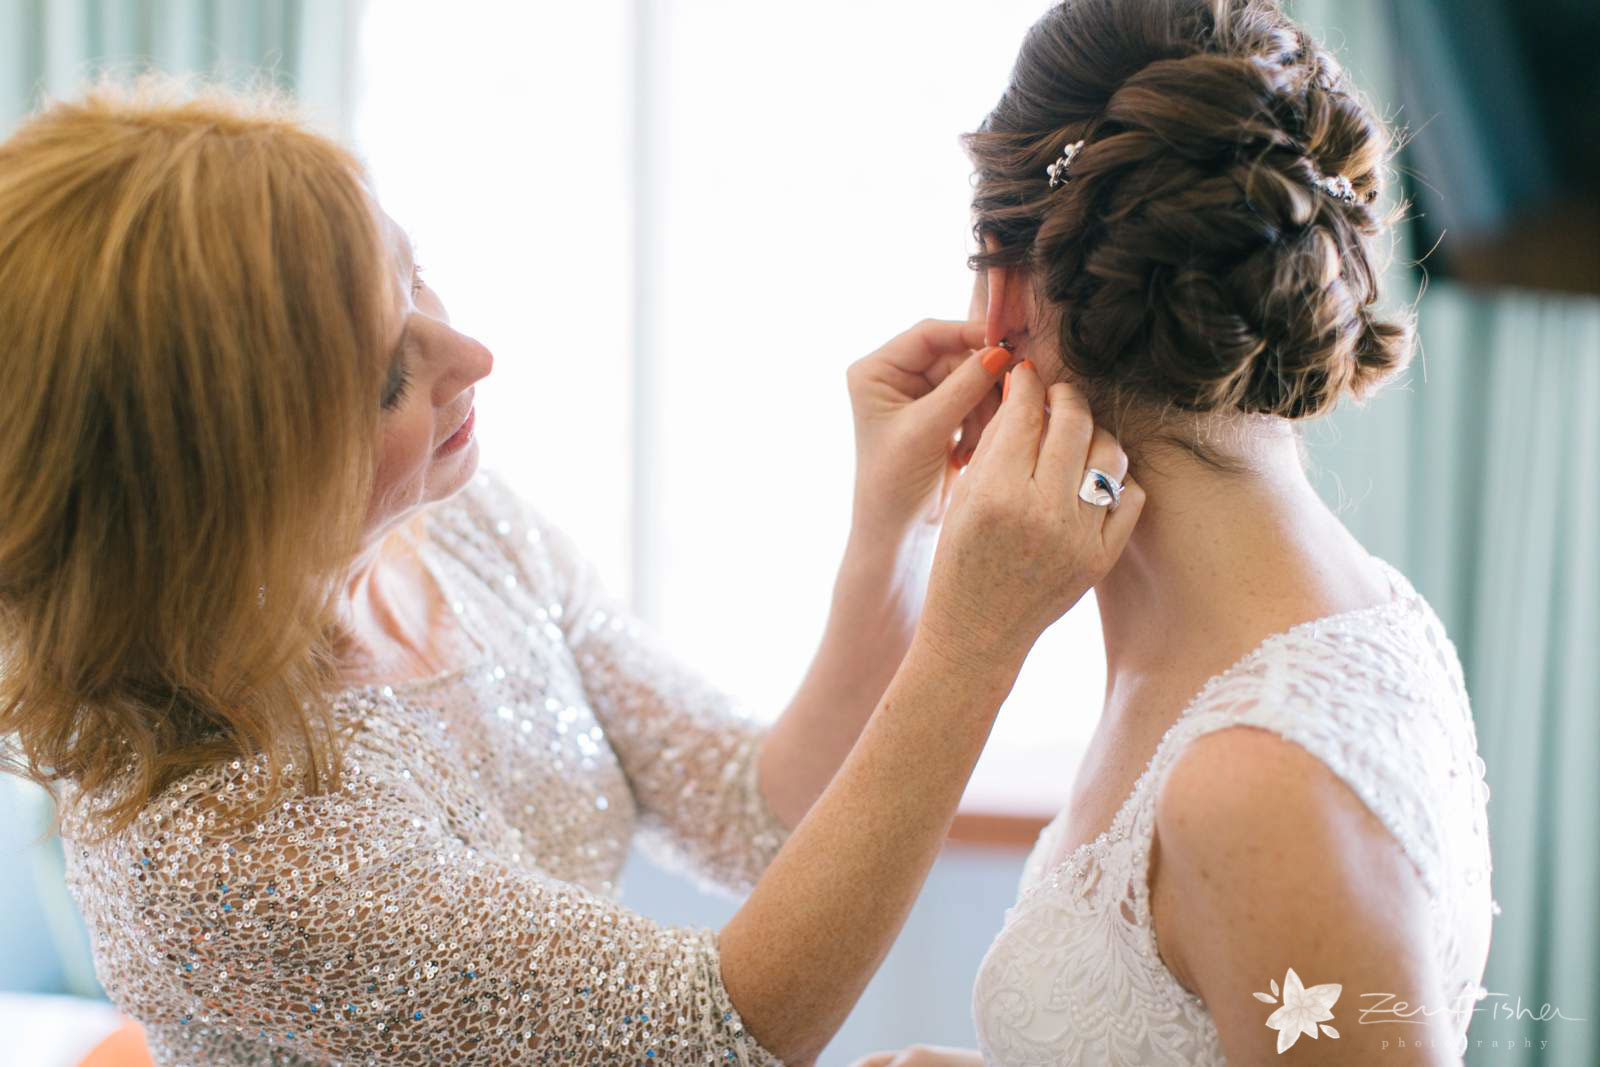 Mother of the bride putting on bride's earrings, bride getting ready in natural light from window.